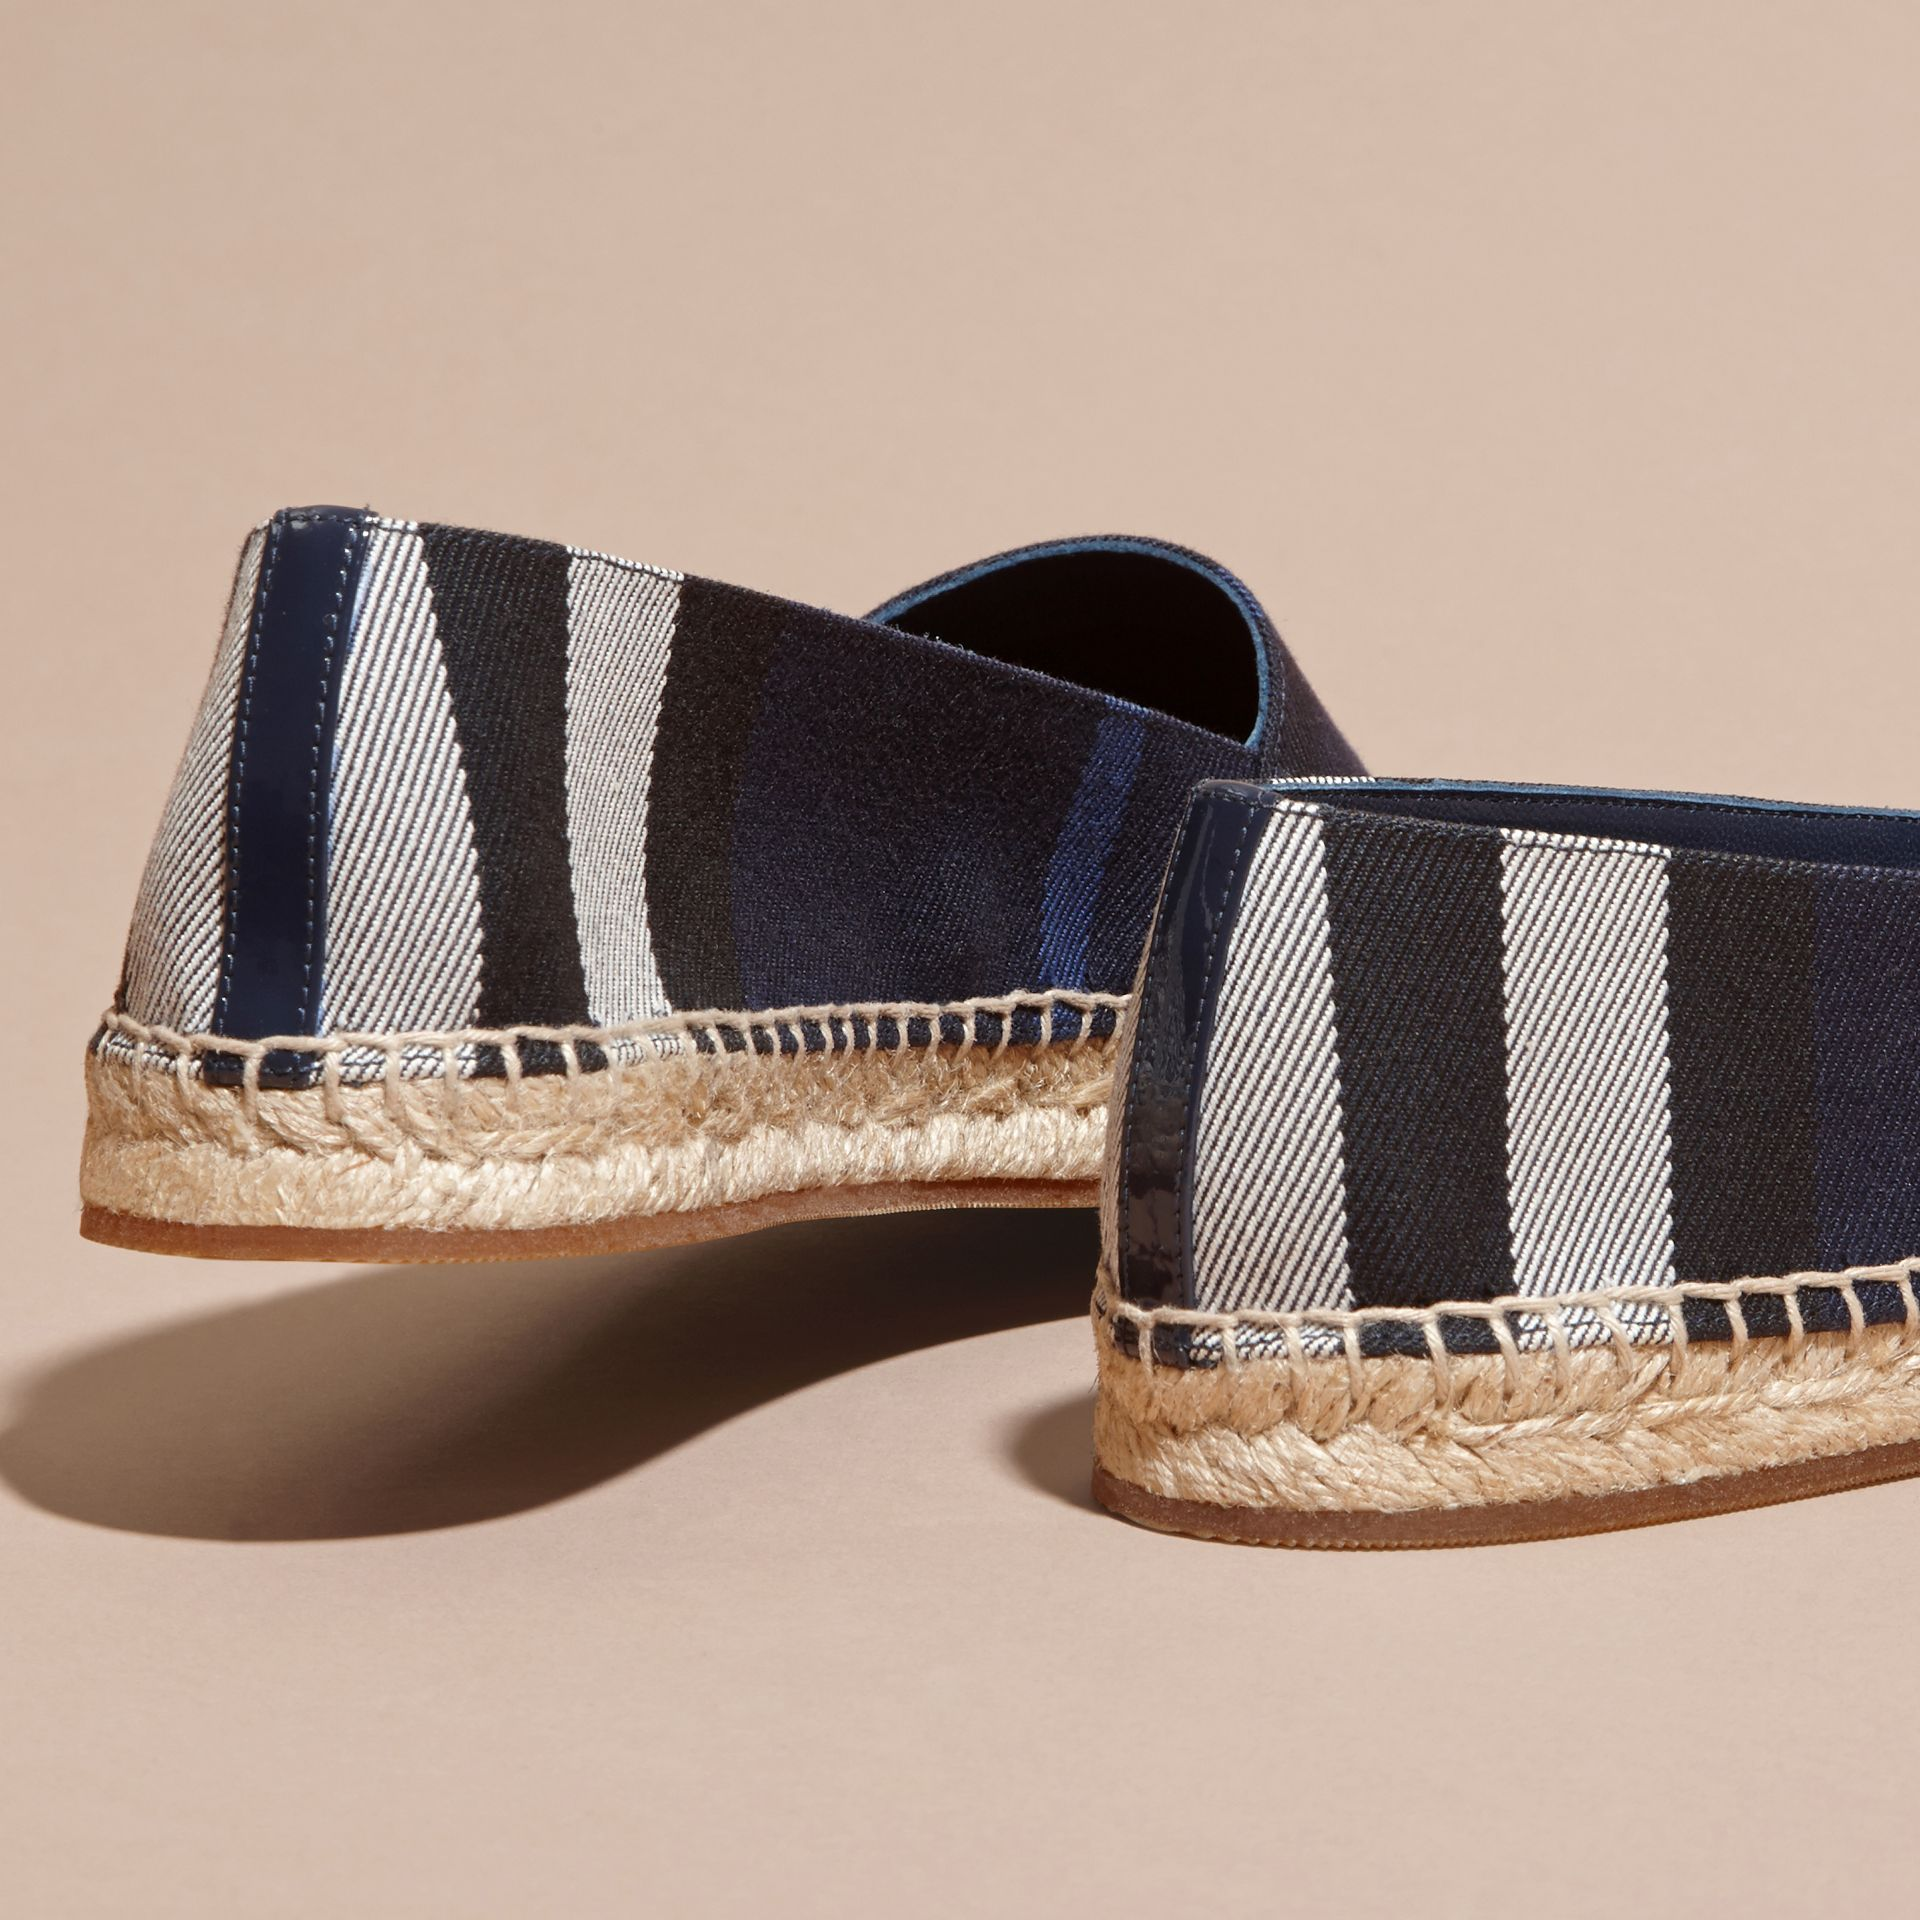 Indigo blue Leather Trim Canvas Check Espadrilles Indigo Blue - gallery image 4